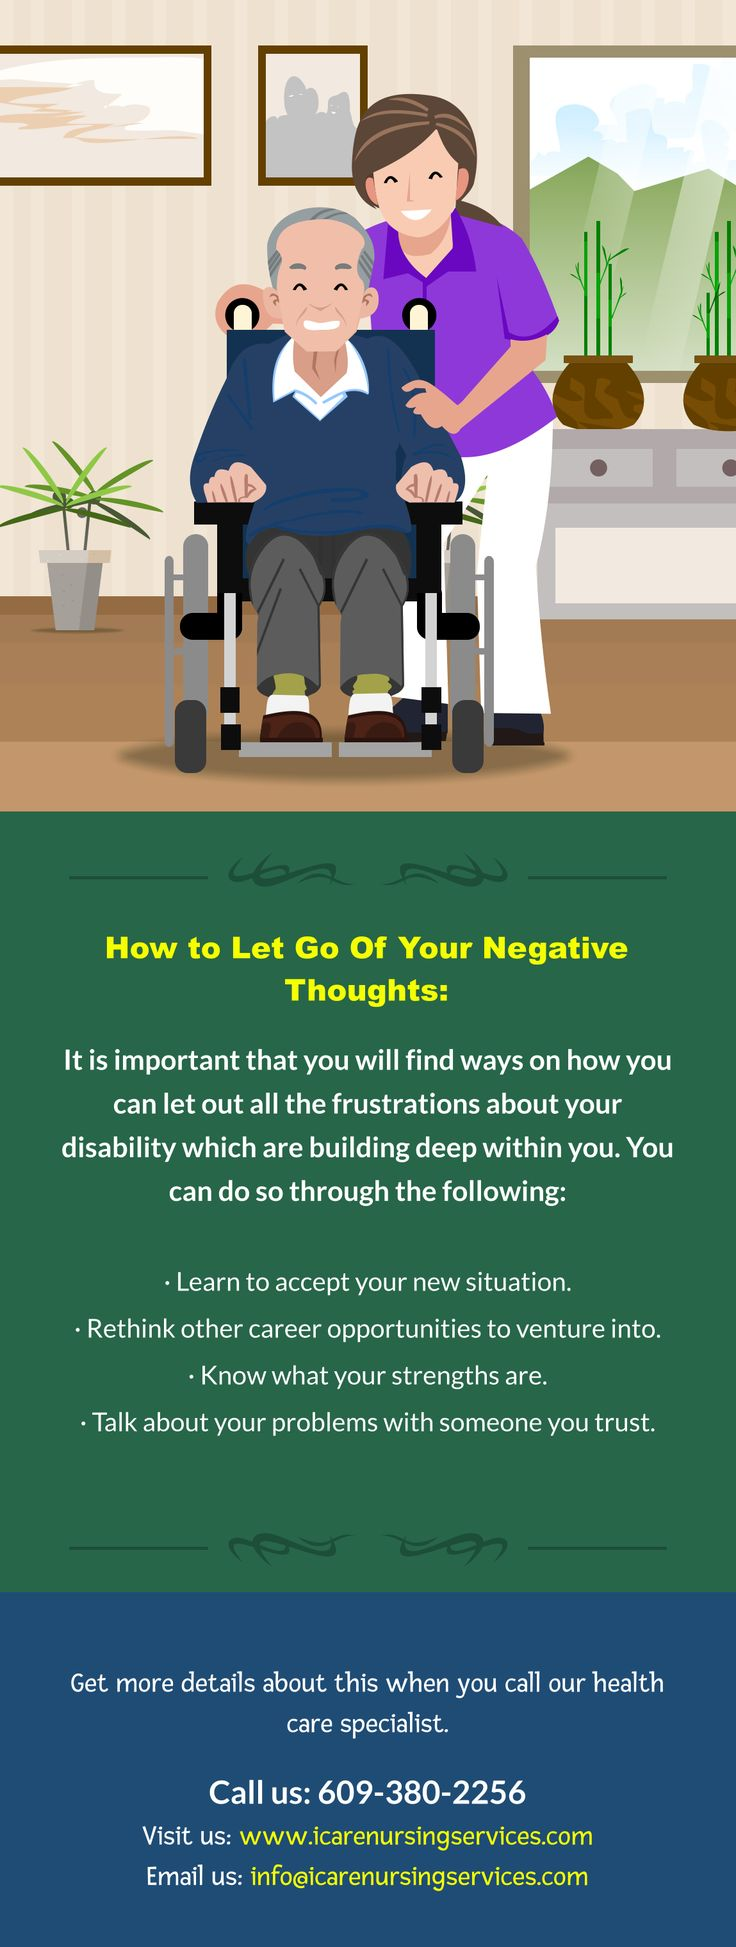 How to Let Go Of Your Negative Thoughts:  It is important that you will find ways on how you can let out all the frustrations about your disability which are building deep within you. You can do so through the following:  - Learn to accept your new situation. - Rethink other career opportunities to venture into. - Know what your strengths are. - Talk about your problems with someone you trust.  Get more details about this when you call our health care specialist. Call us: 609-380-2256 Visit…